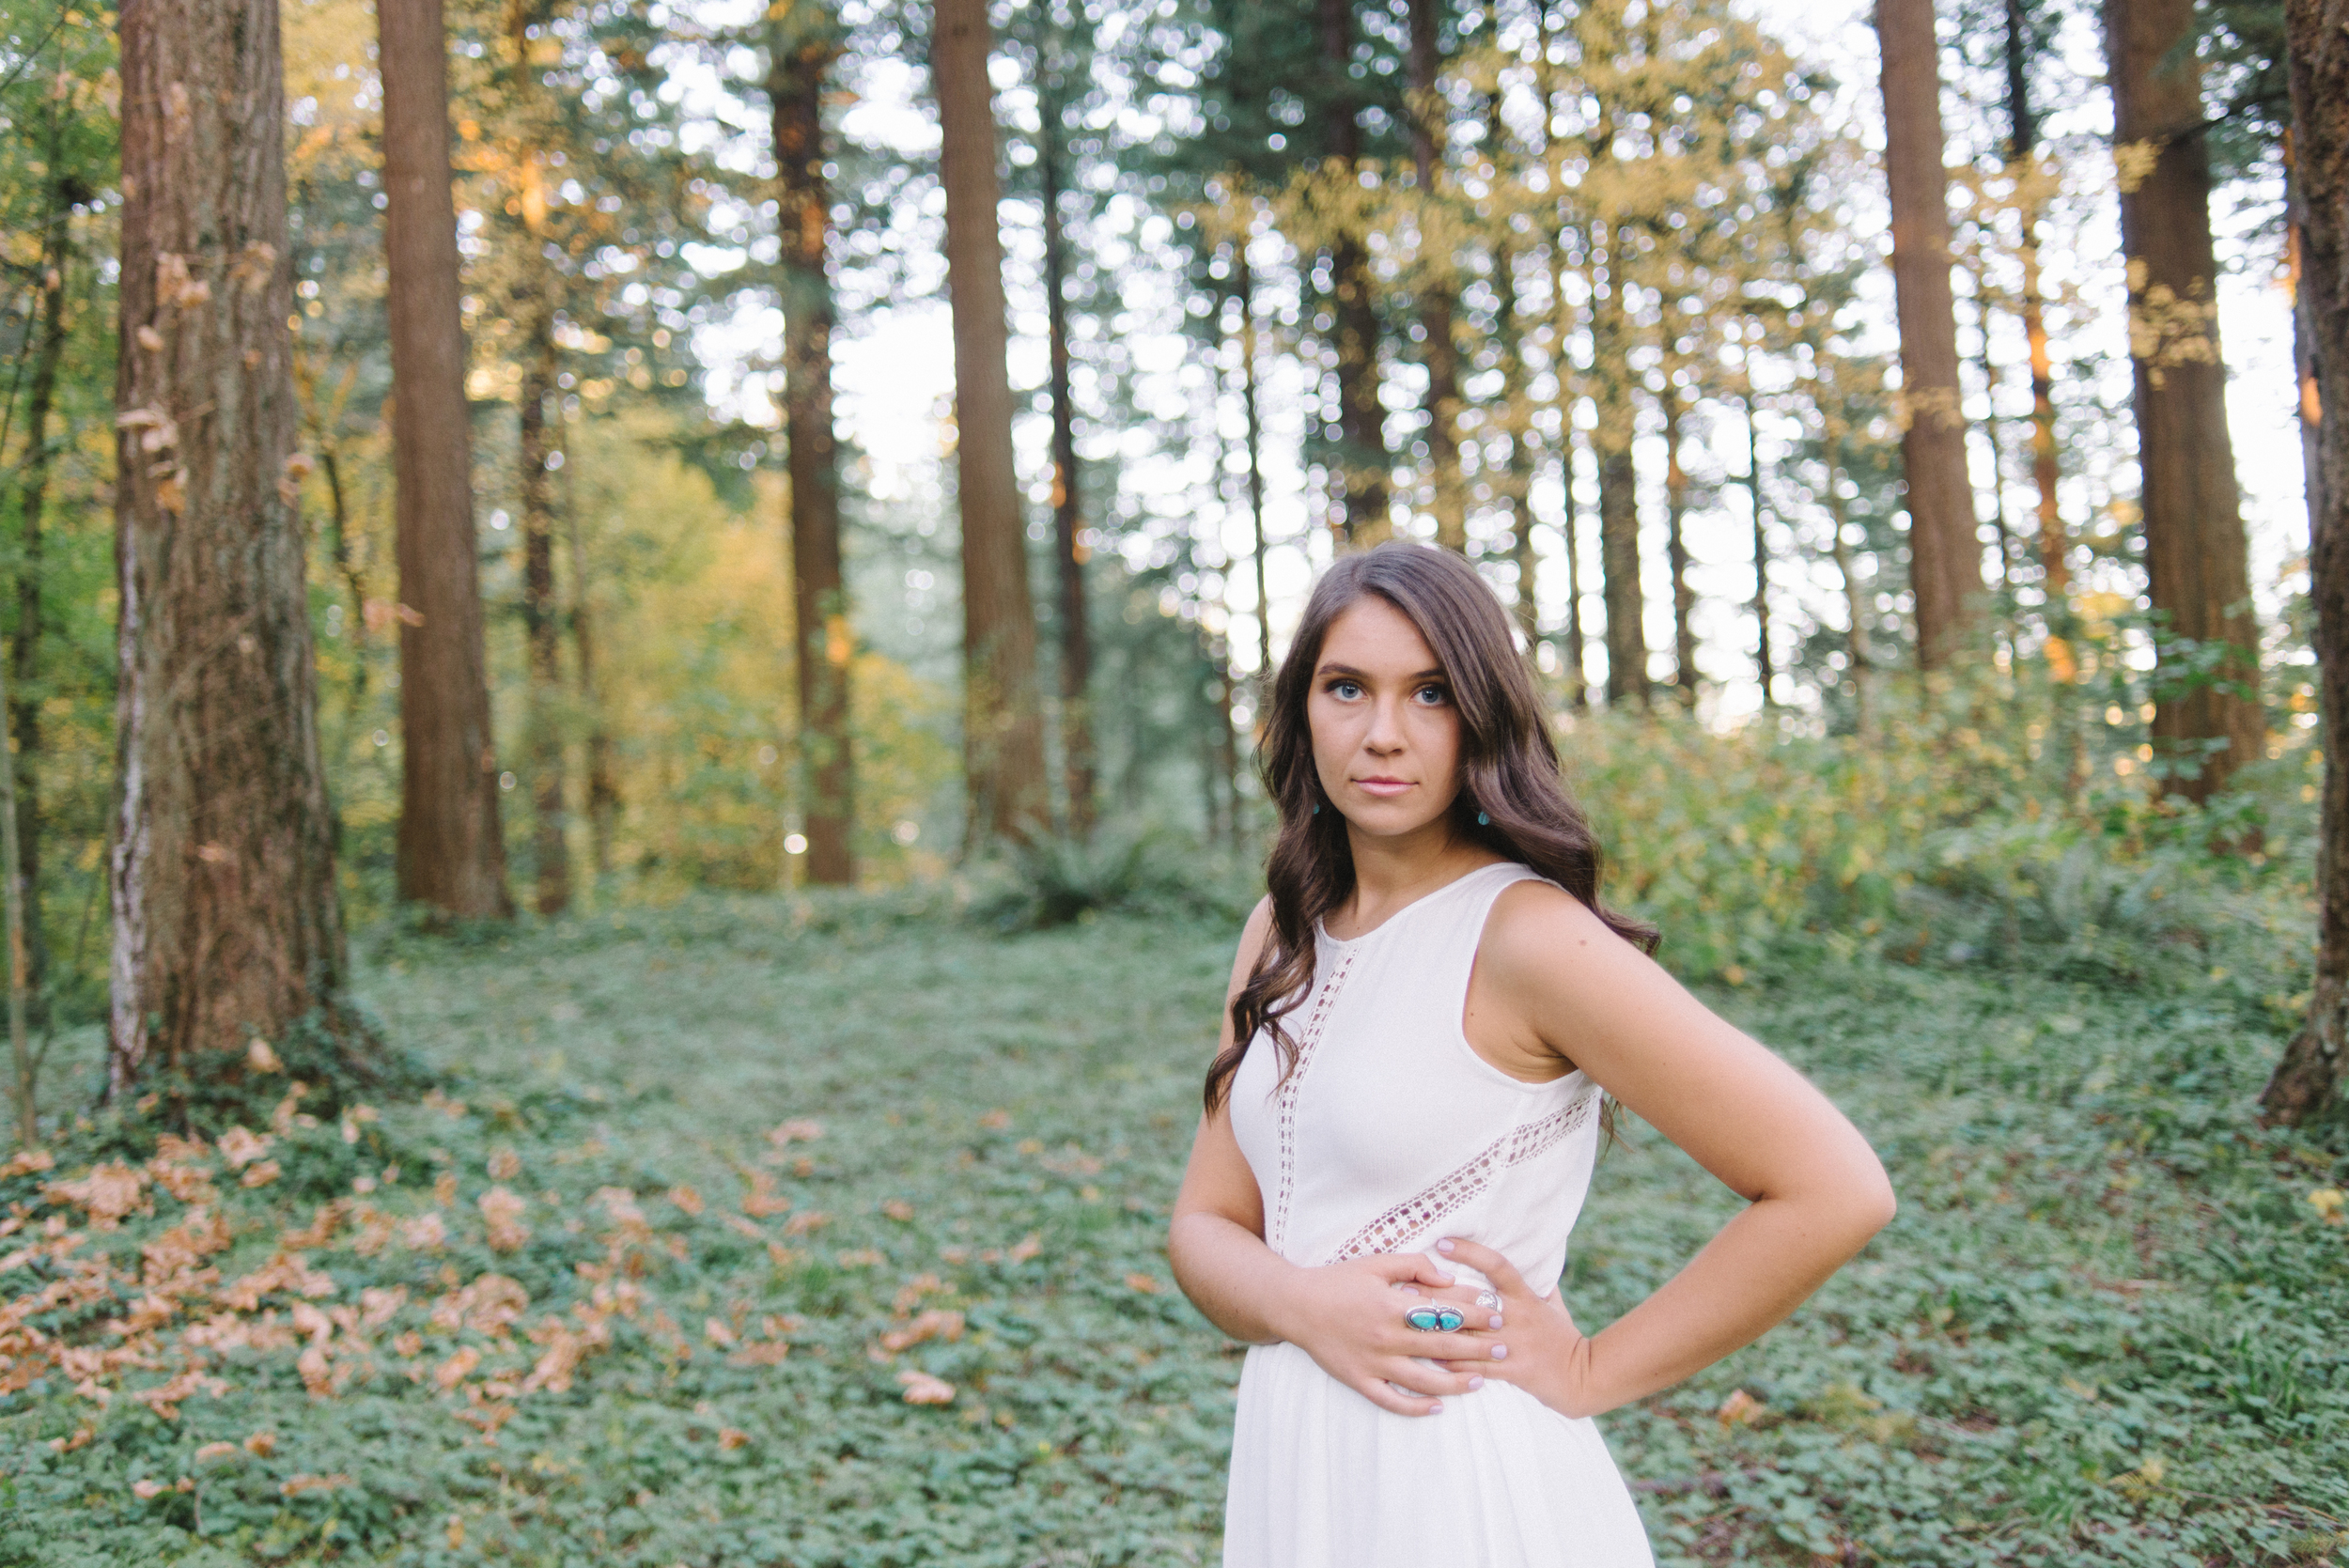 SiennaLochtie_Senior-2014_Hoyt_Arboretum_Washington_Park_Natural_Outdoor_Senior_Portrait_Photography_Portland_Oregon_501.jpg